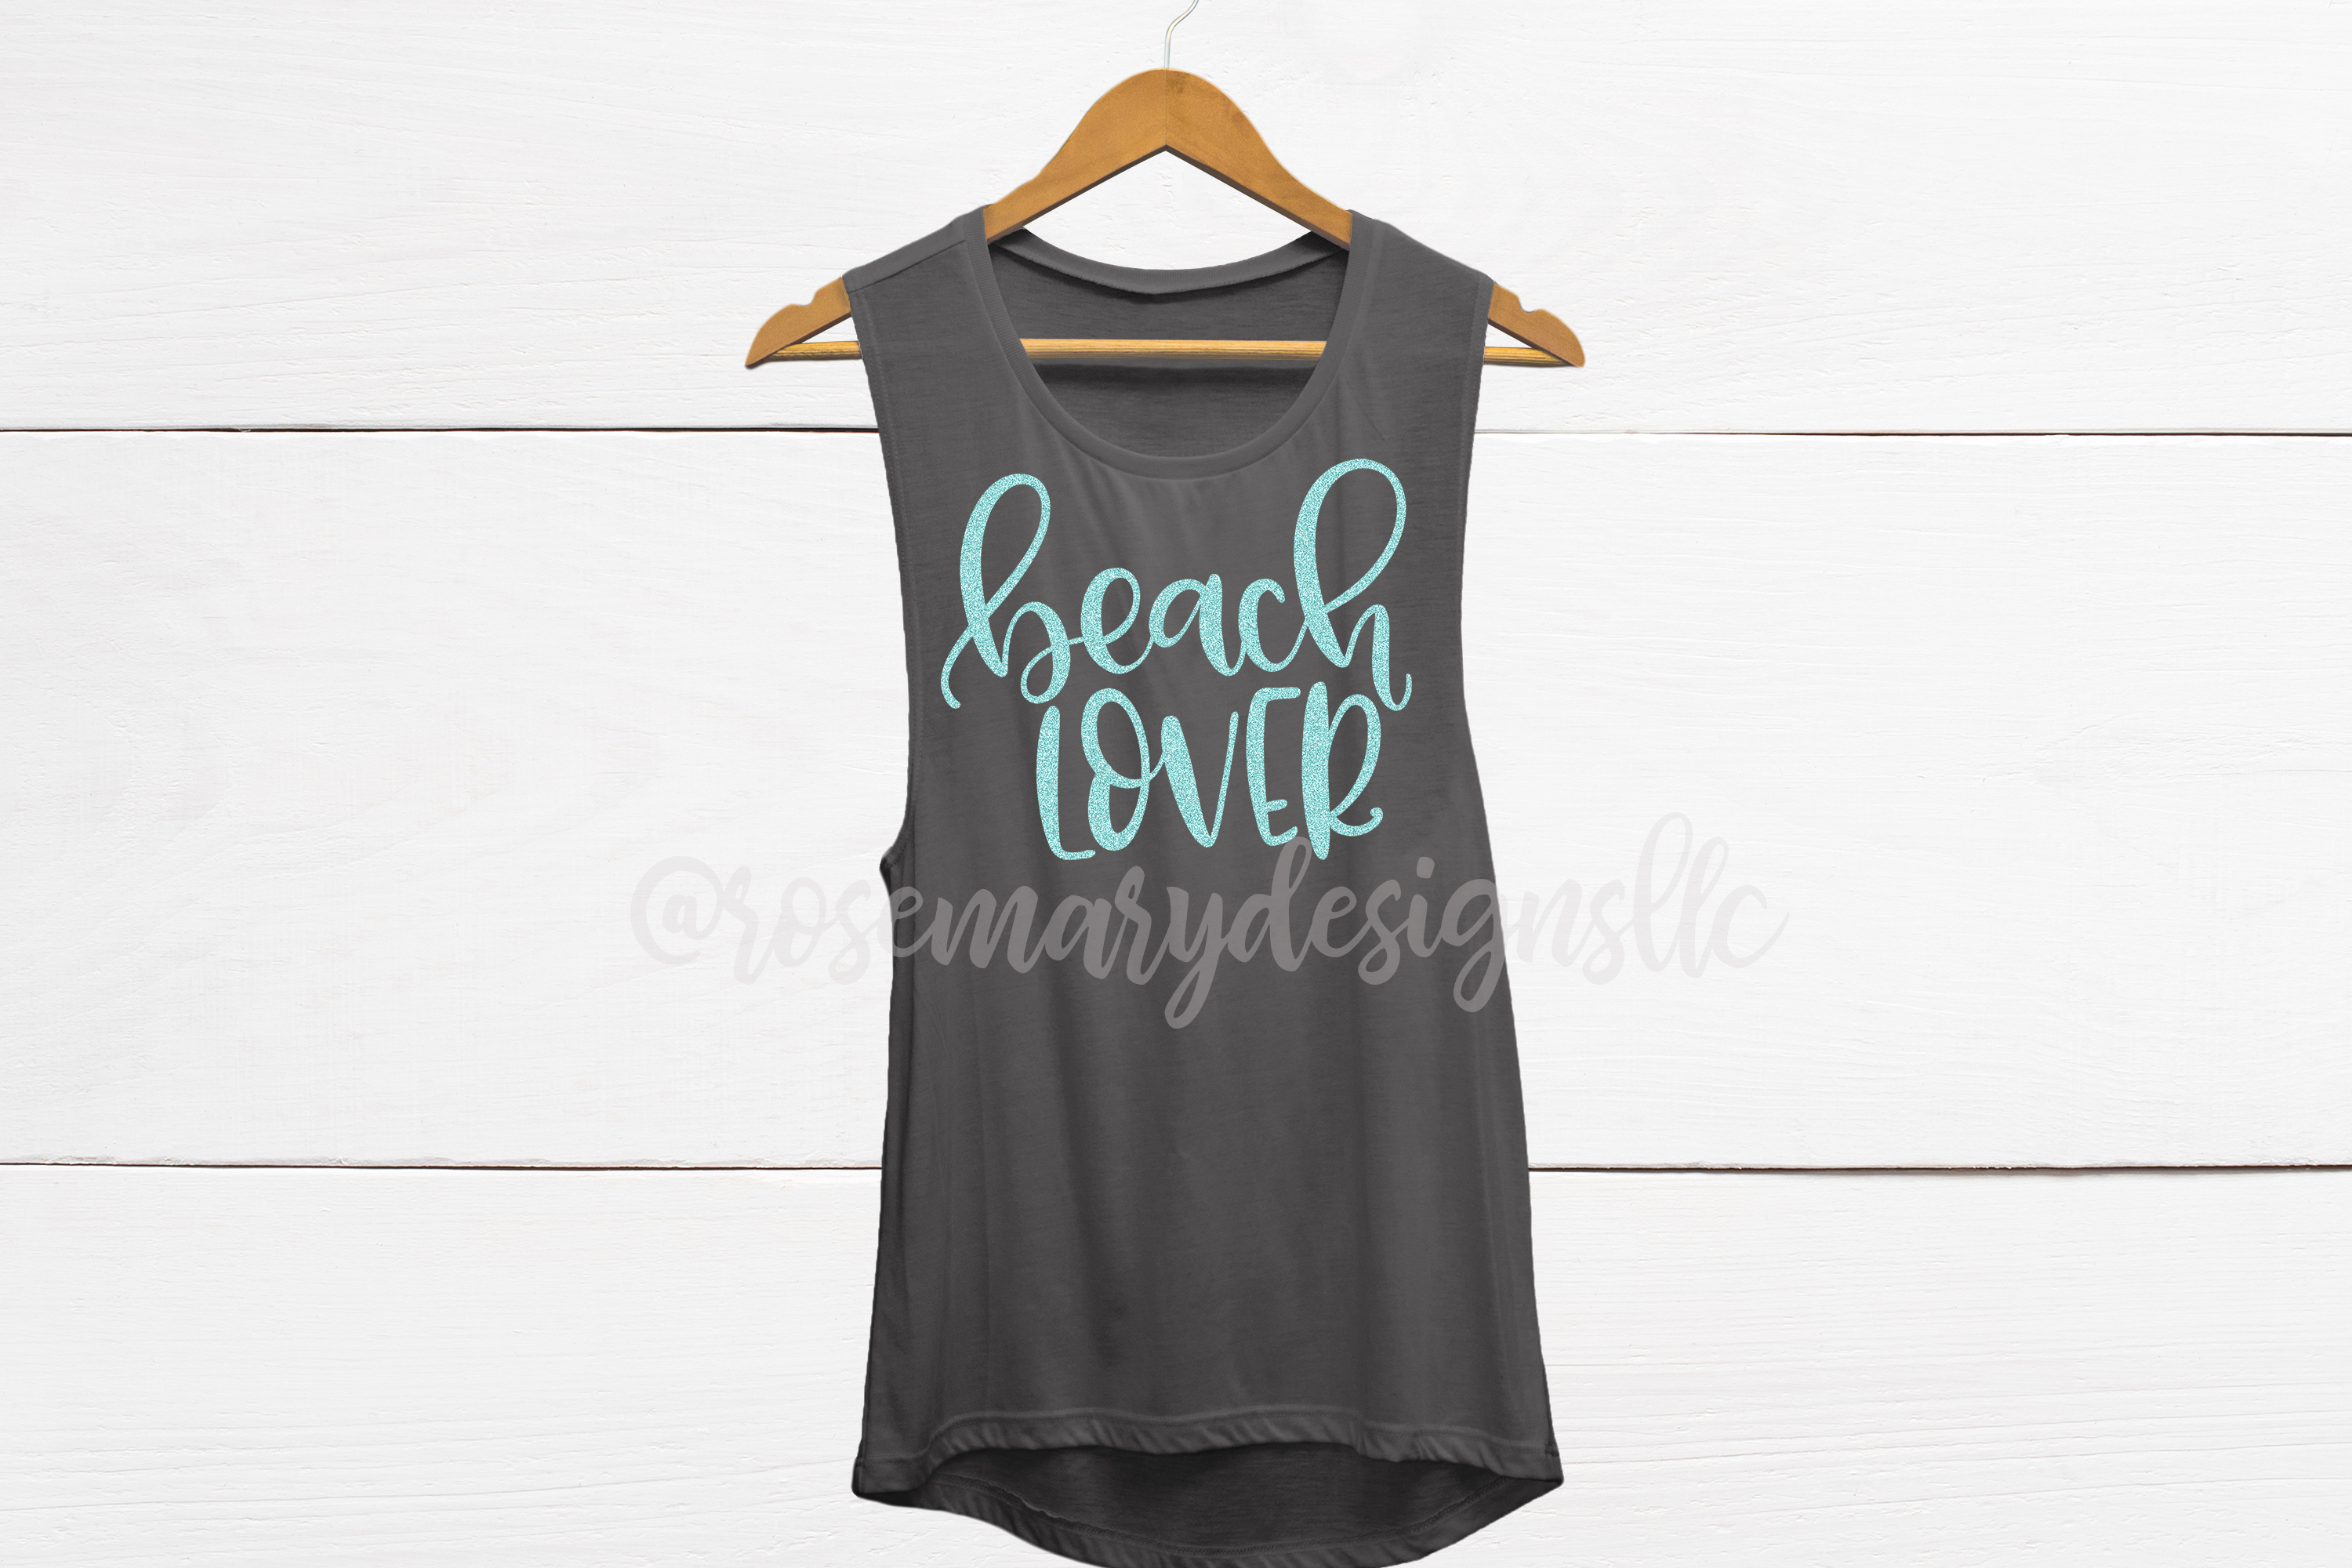 Beach Lover - Hand Lettered SVG example image 1